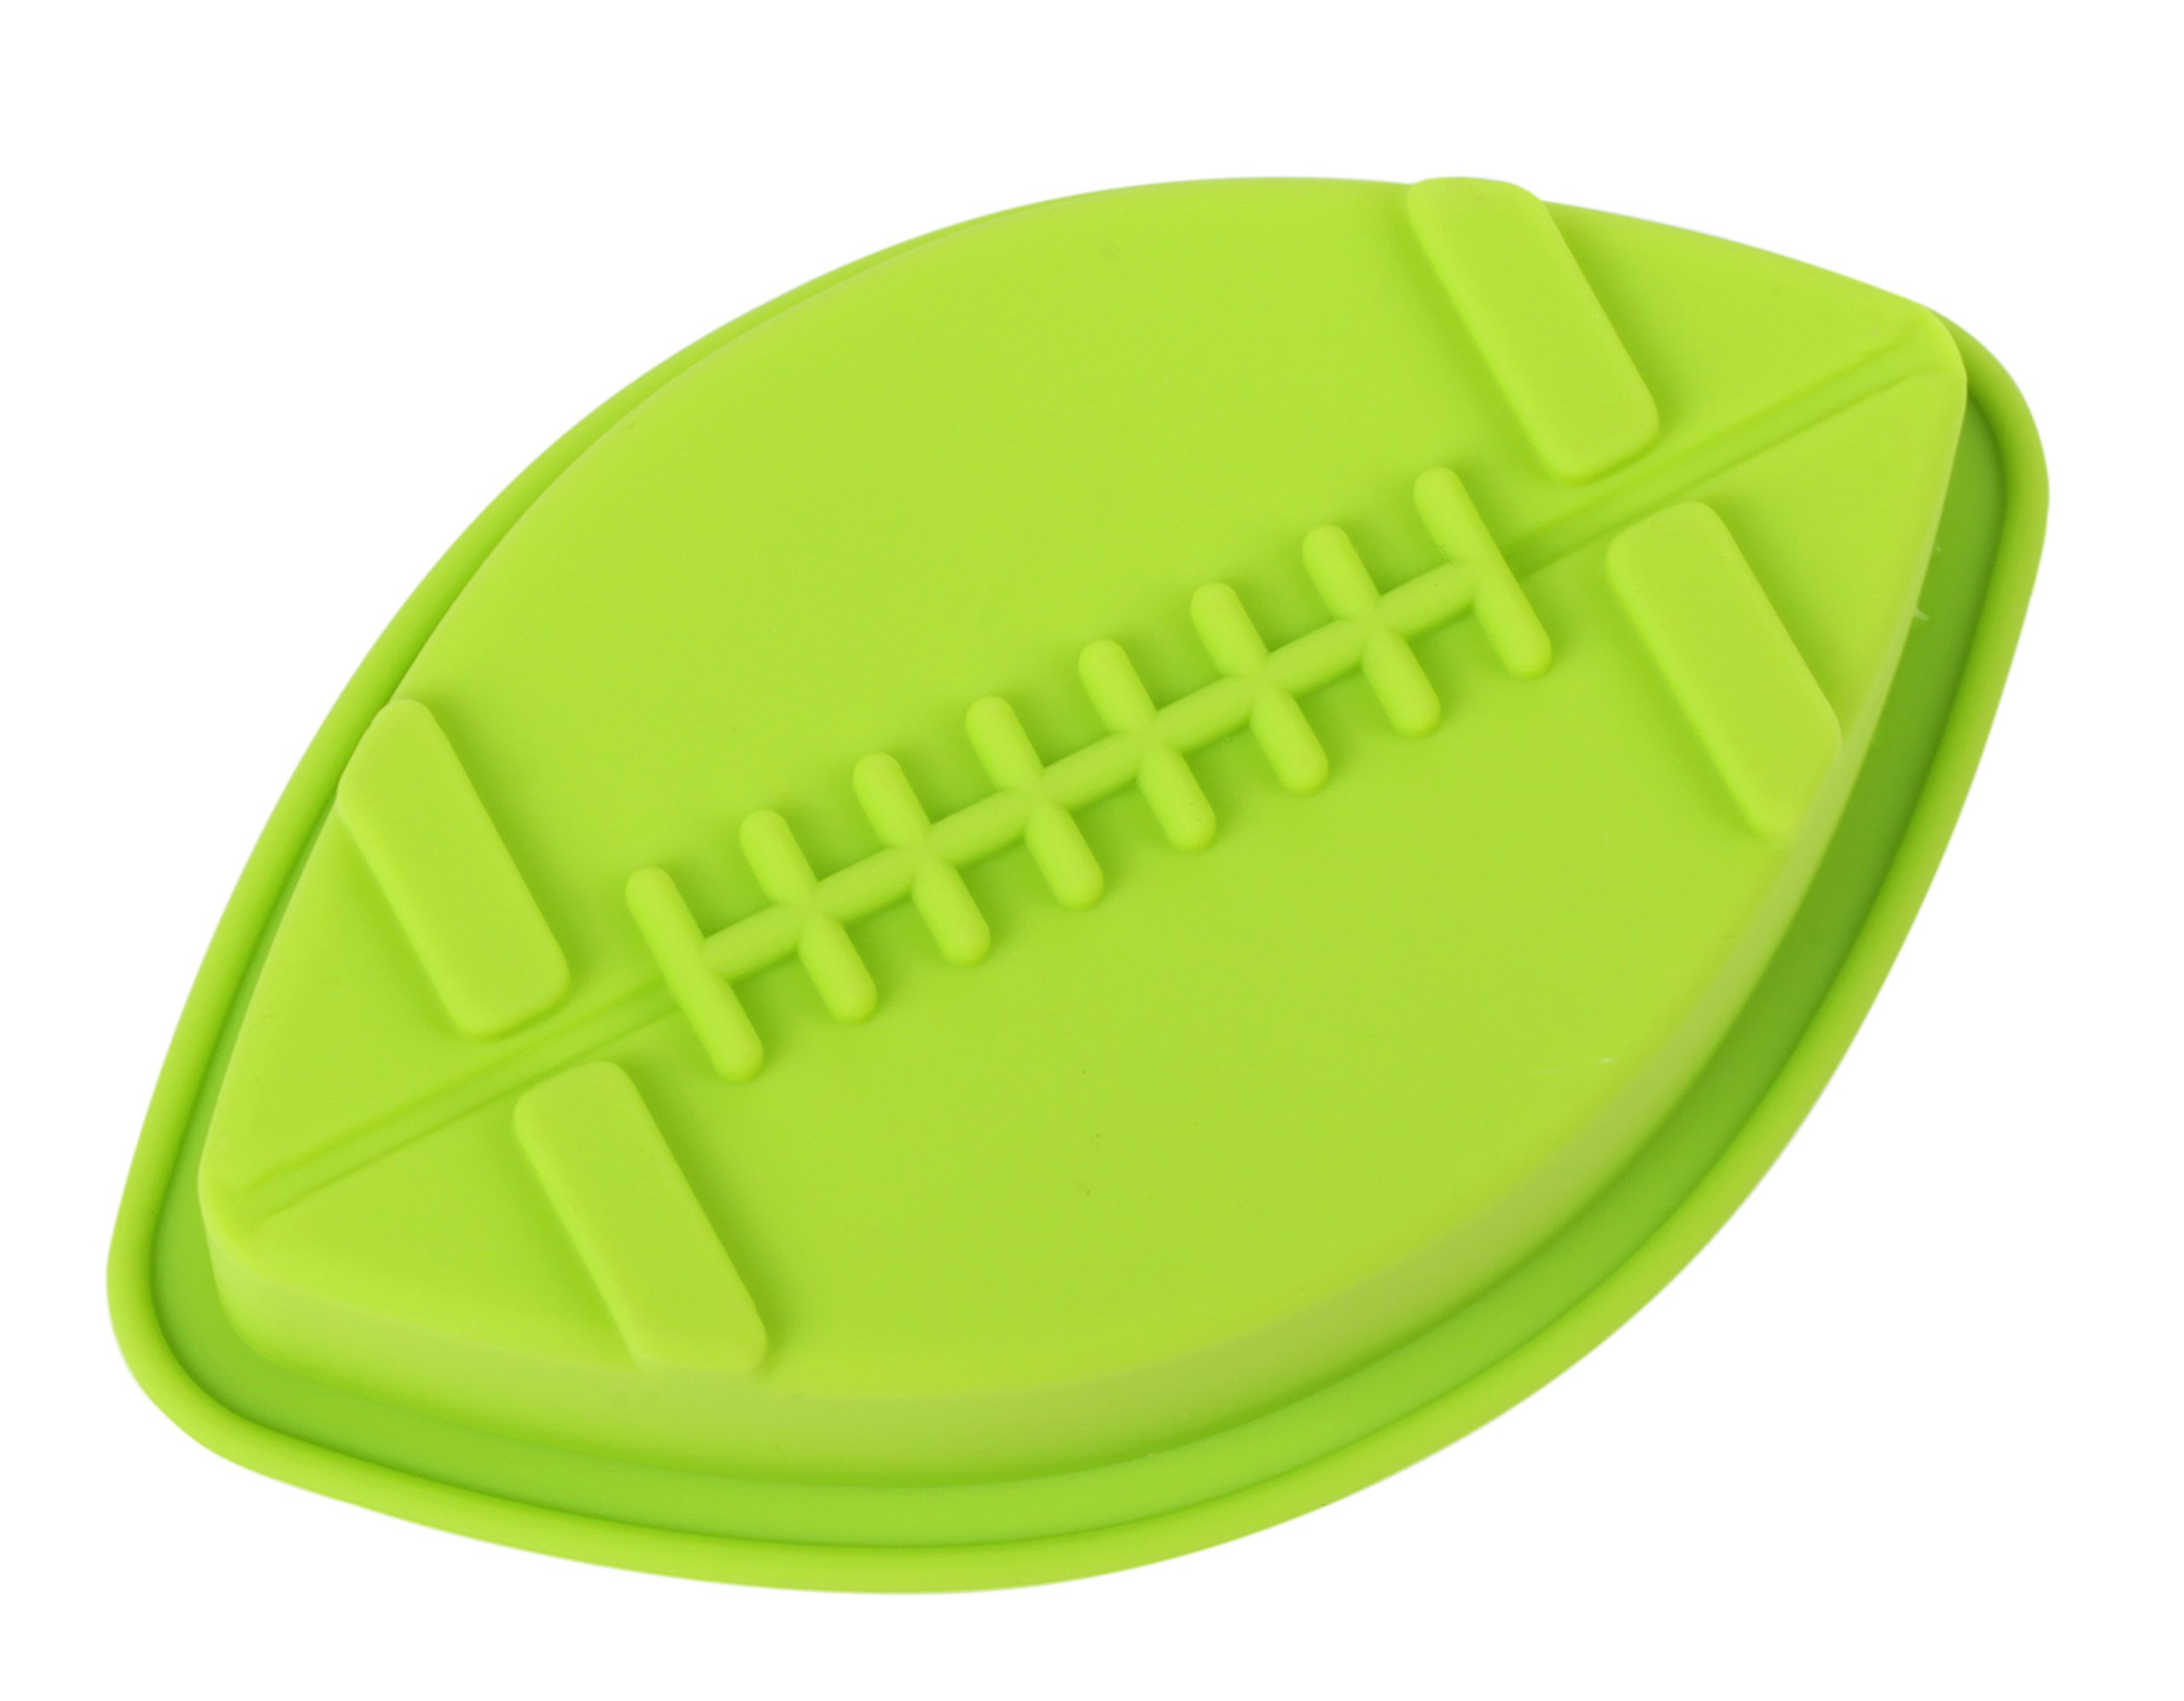 Home Value Colorful Silicone Sports Ball Set'' Soccer, Tennis, Baseball, Basketball '' Cake Mold, Assorted Colors (HVCOOKIECUTSC09) by Value Home (Image #2)